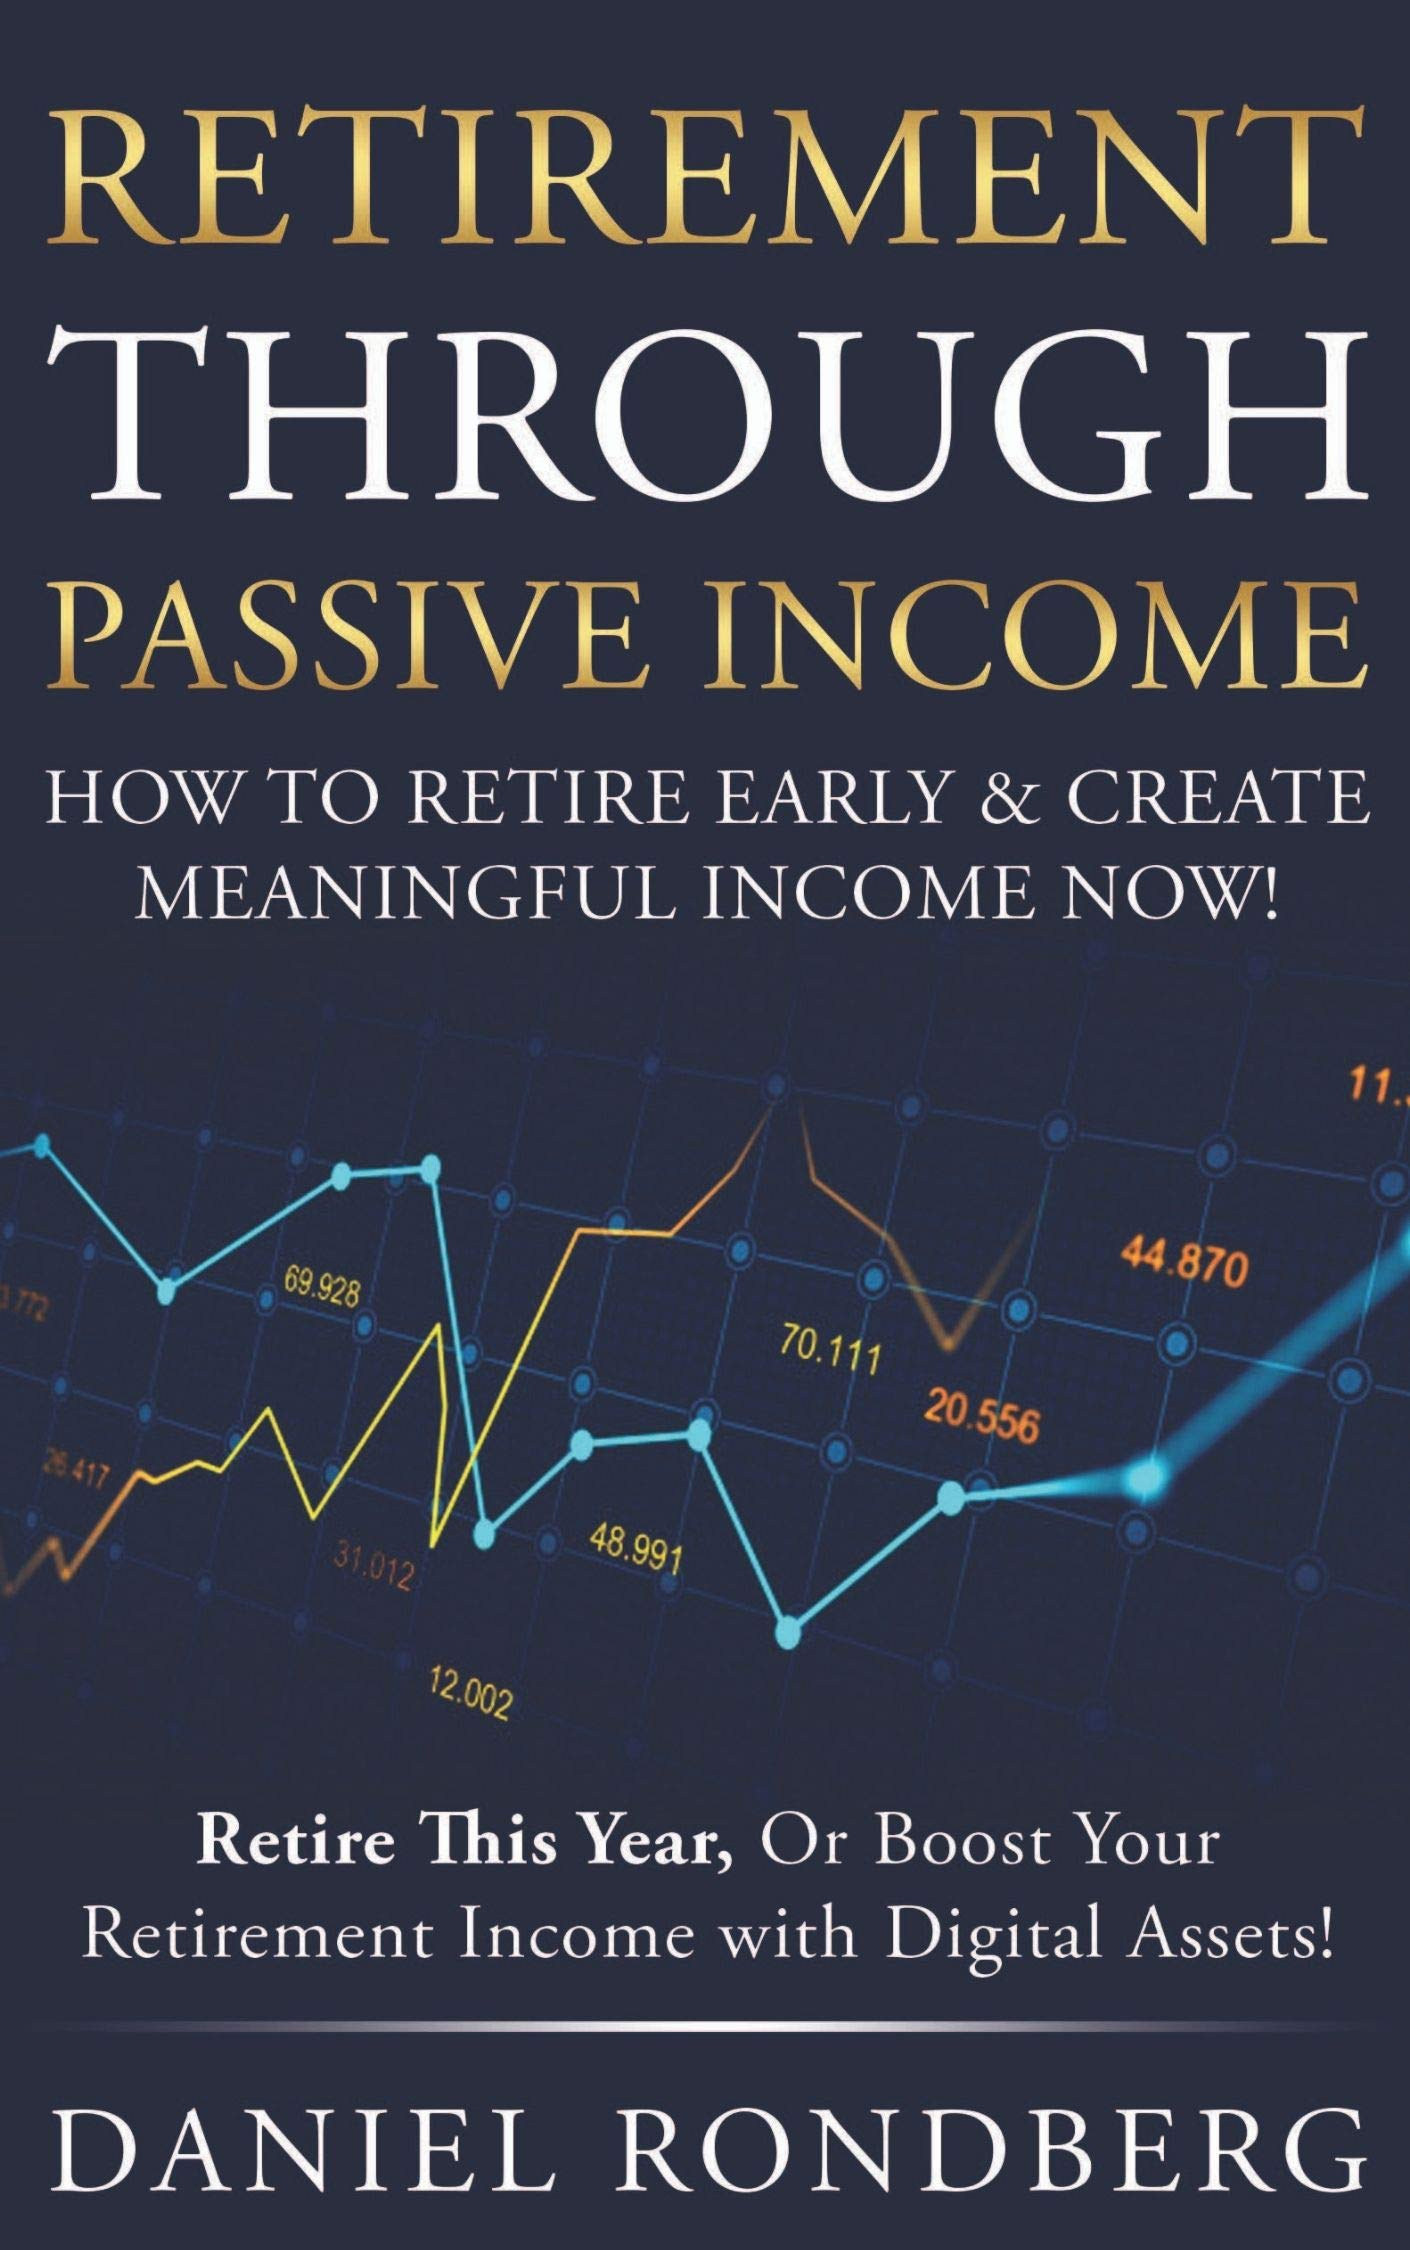 RETIREMENT THROUGH PASSIVE INCOME: How to Retire Early and Create Meaningful Income Now